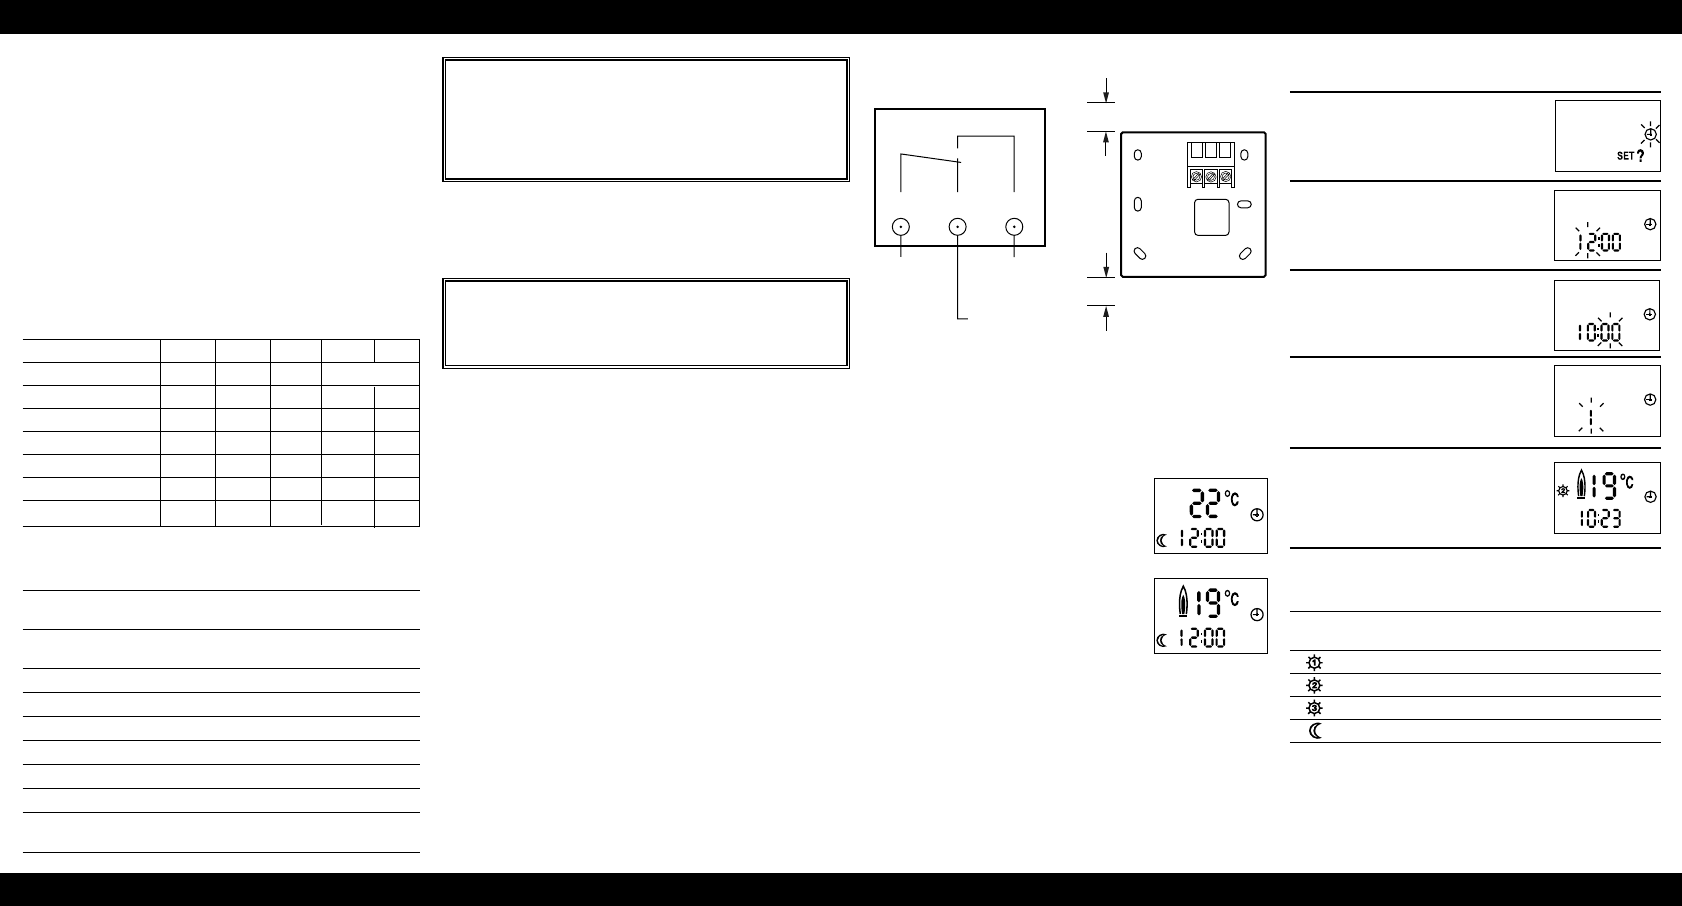 Handleiding drayton erie digistat 3 pagina 1 van 2 english wiring schematic wall plate clearances swarovskicordoba Images